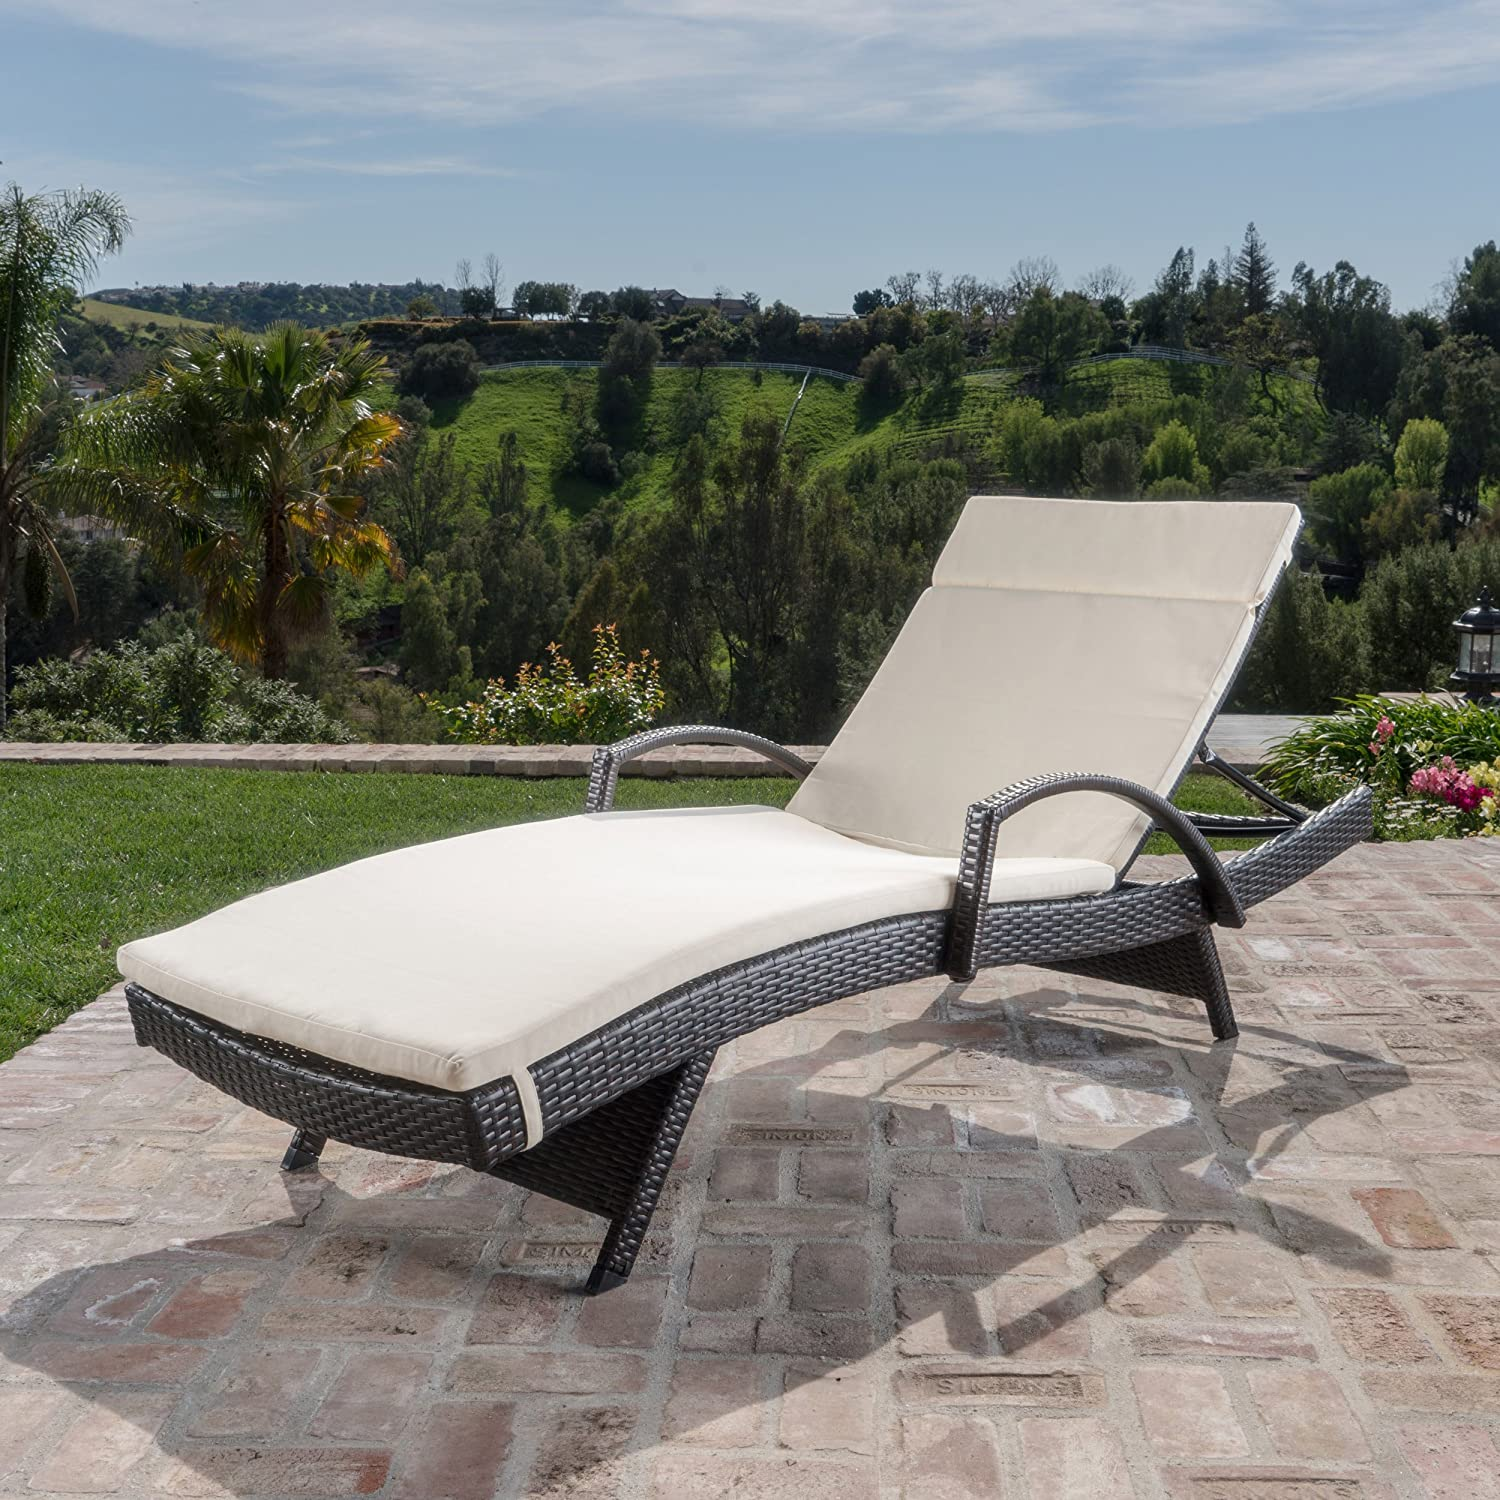 Christopher Knight Home Salem Outdoor Wicker Chaise Lounge Chair With Arms With Cushion, Brown Beige